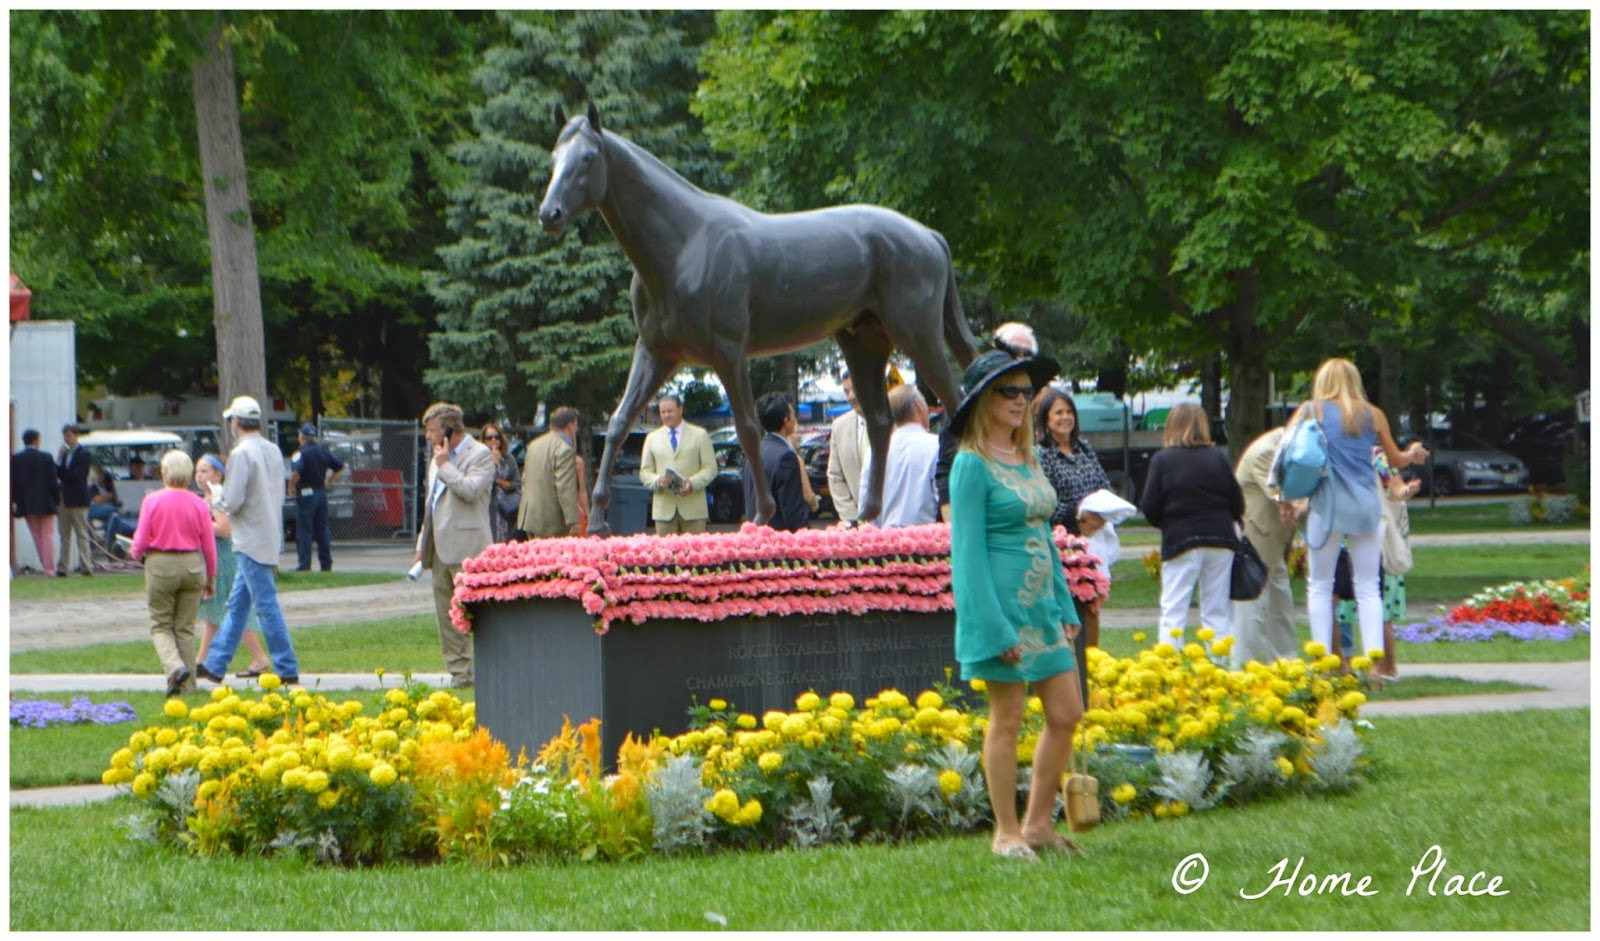 Home place saratoga race course with america 39 s best racing for Americas best home place